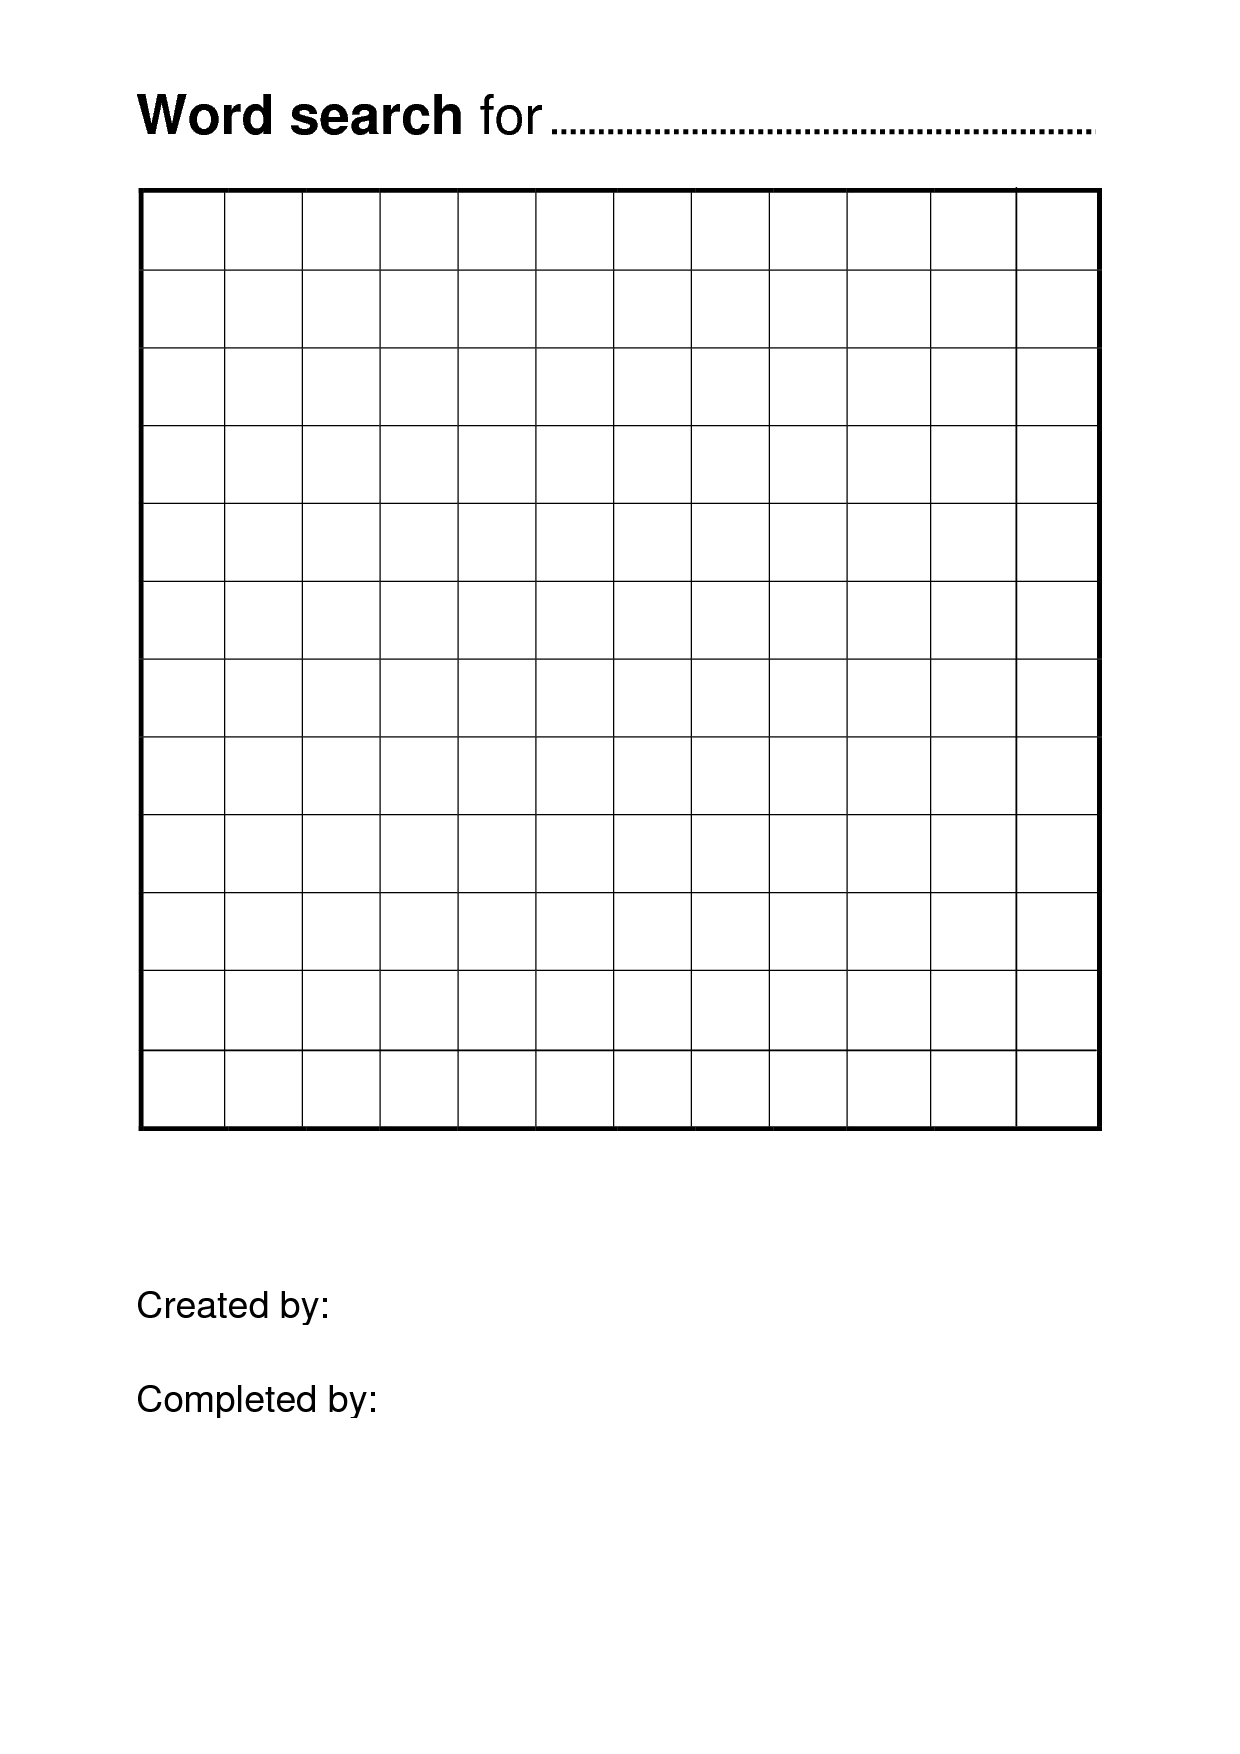 Free Printable Word Search Puzzle Templates | Word Search